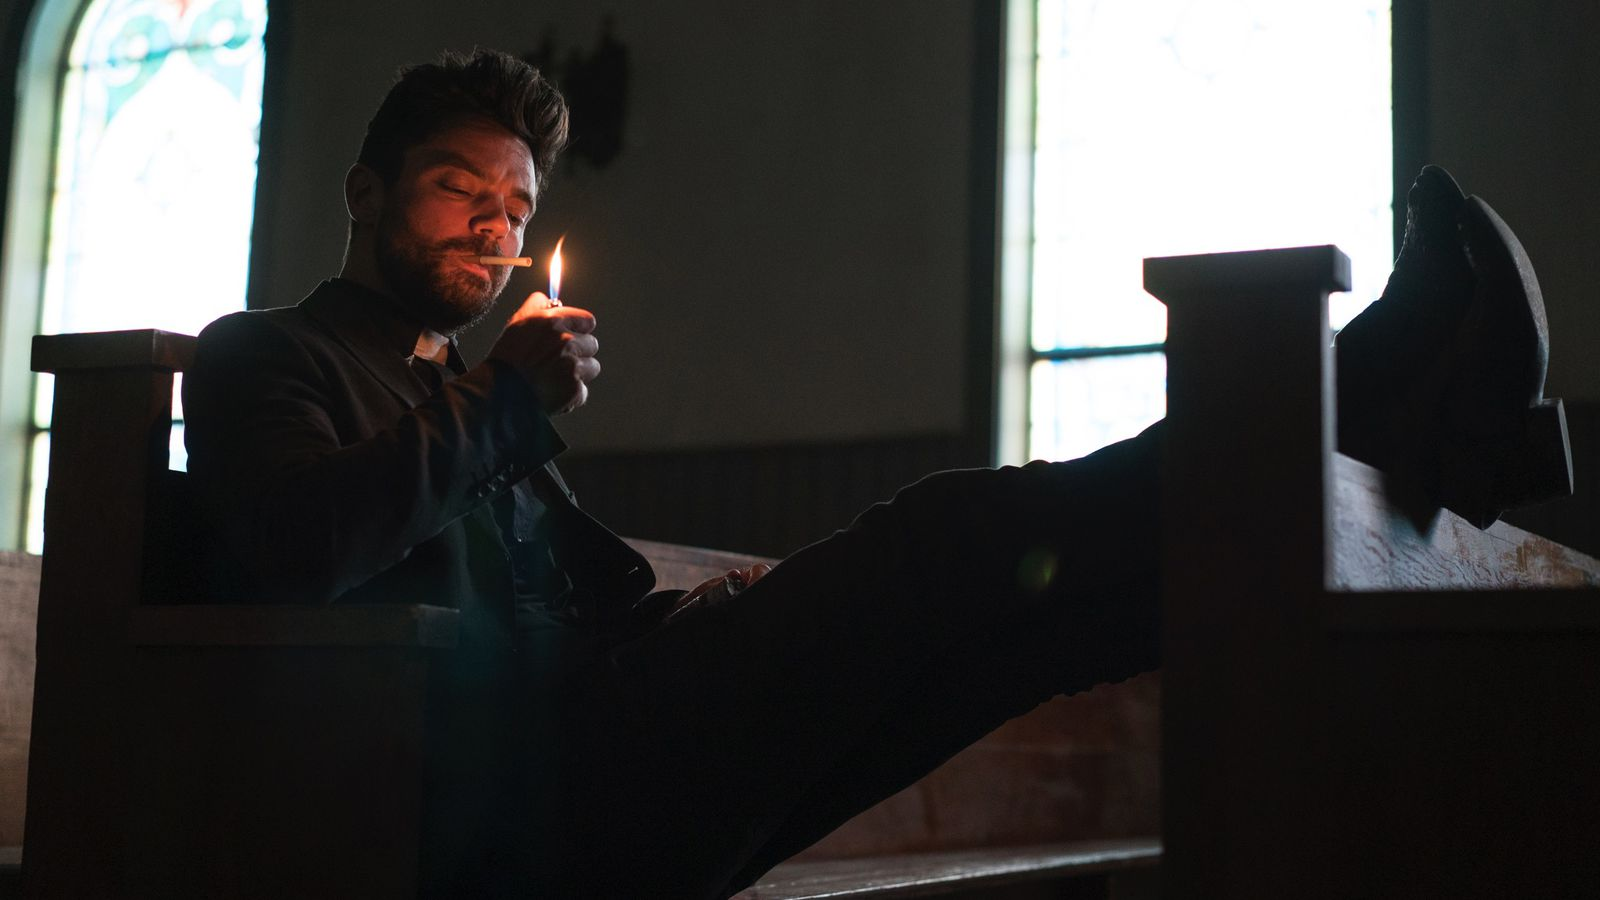 AMC's Preacher starts off too safe and too slow | The Verge